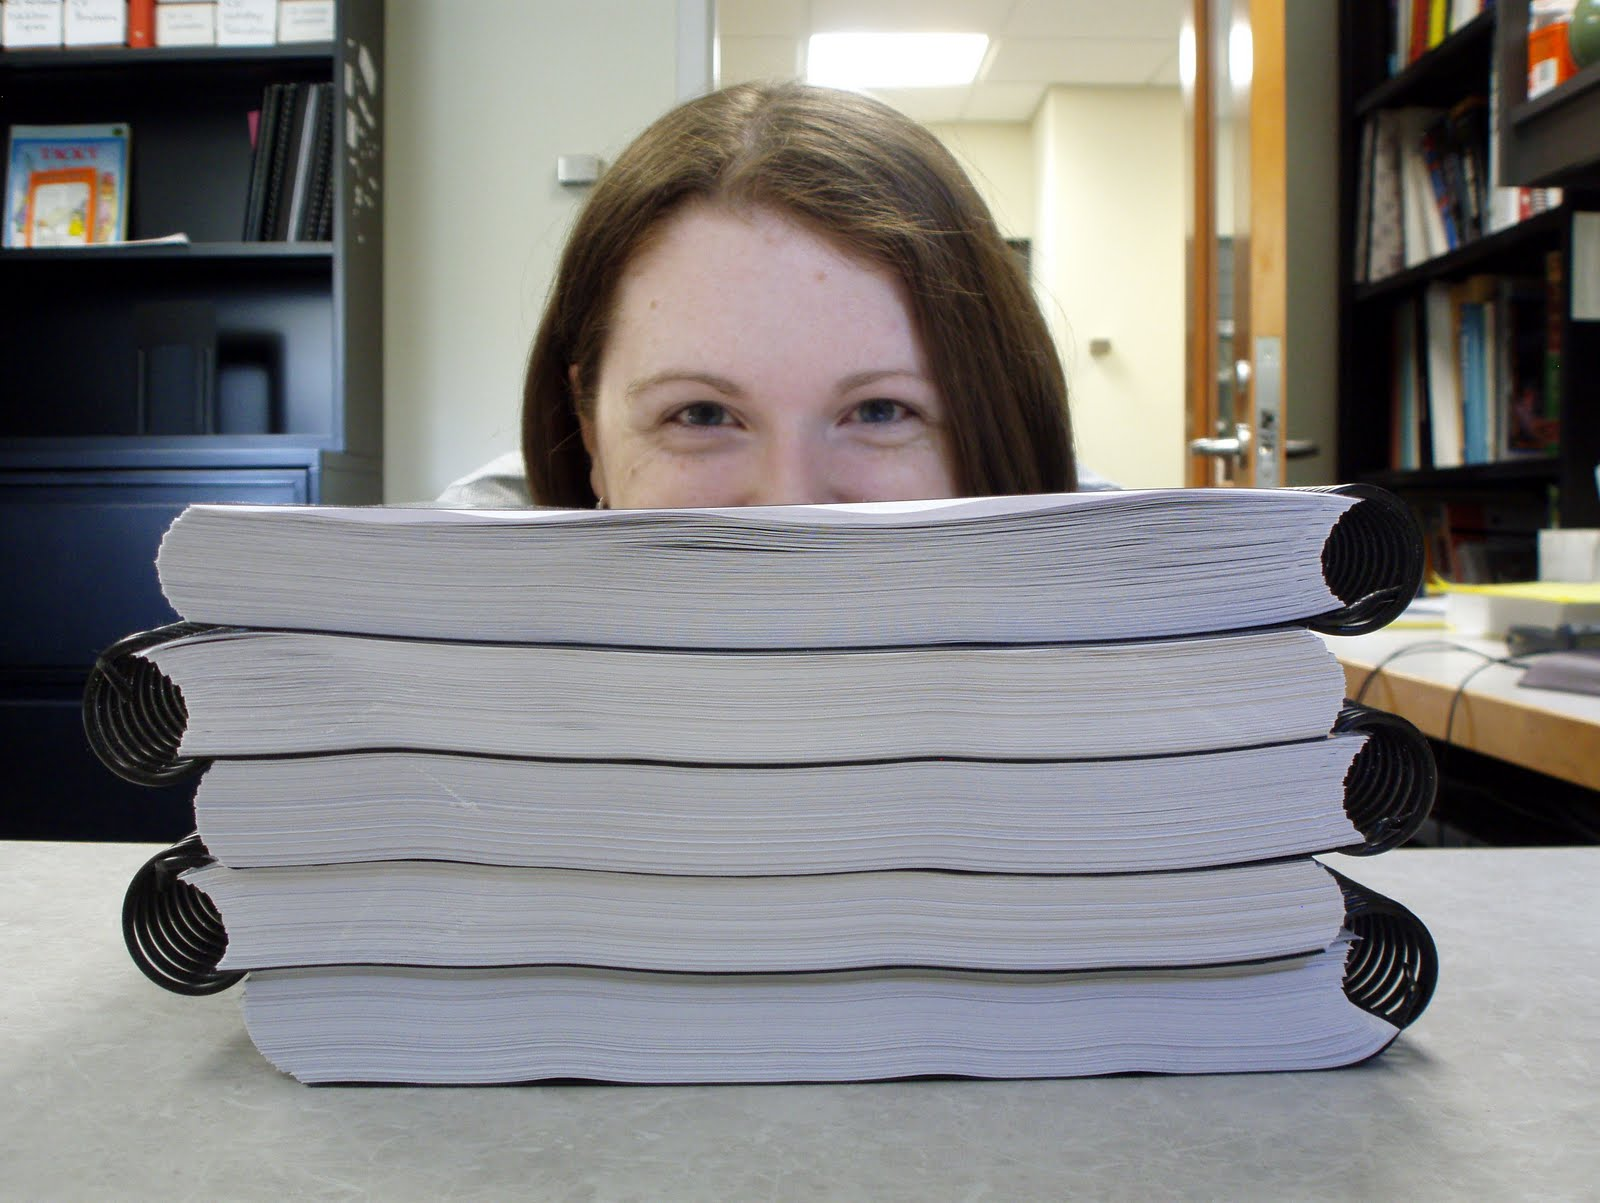 Phd thesis how many pages